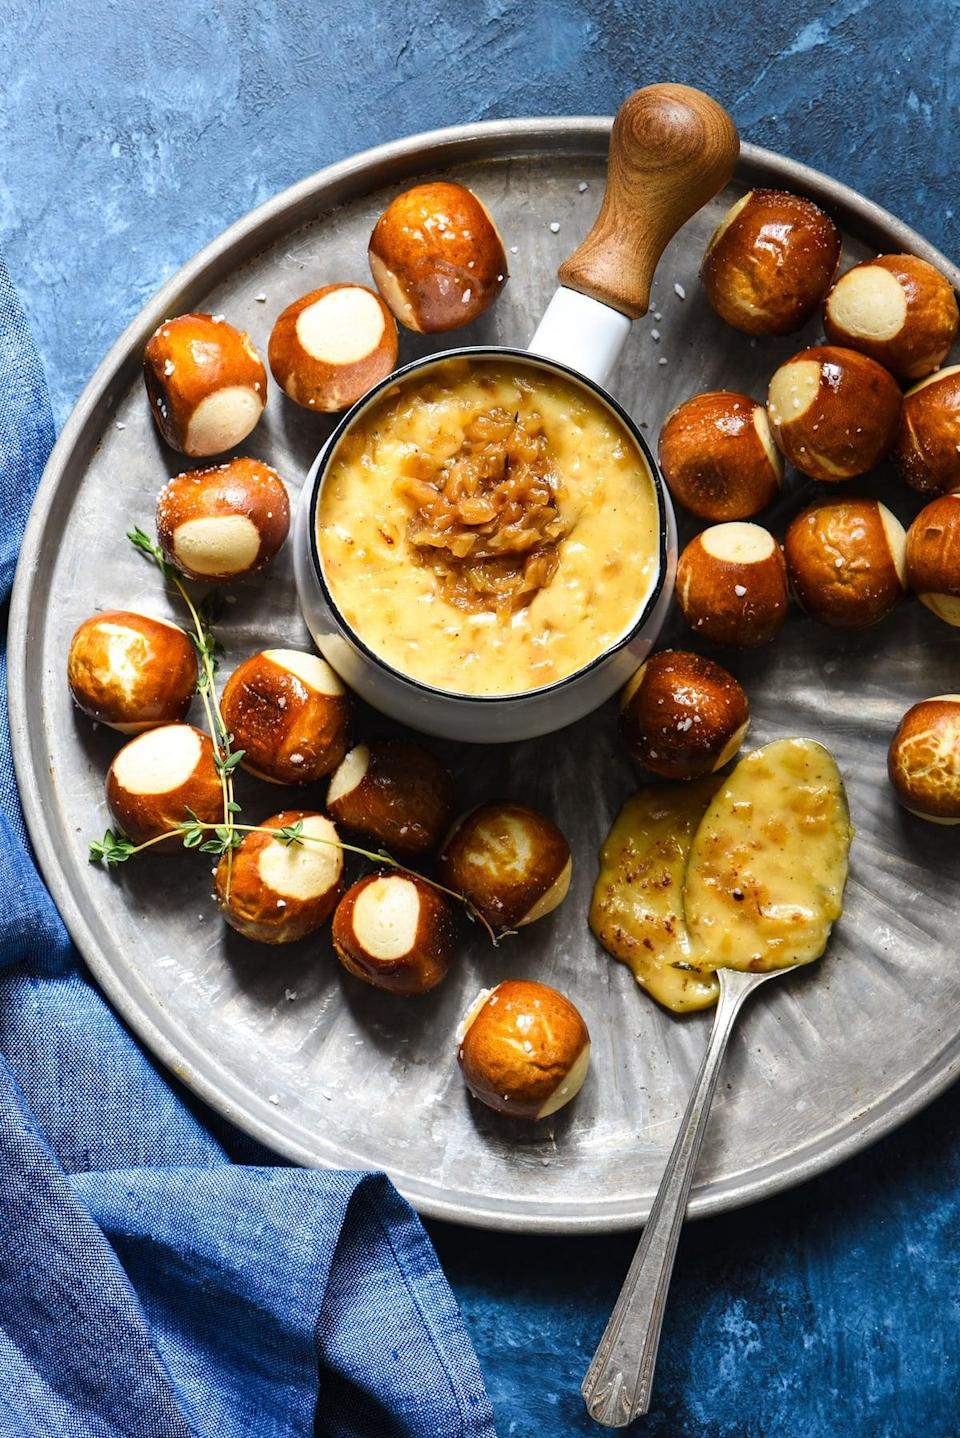 "<p>You heard it here first: three-cheese fondue is even better when you add deeply caramelized onions to the mix. Fontina, butterkase, and shredded grand cru cheese work together to make this the gooey dip of your dreams. Just add warm pretzel bites for best results.</p> <p><strong>Get the recipe</strong>: <a href=""https://foxeslovelemons.com/french-onion-cheese-fondue/"" class=""link rapid-noclick-resp"" rel=""nofollow noopener"" target=""_blank"" data-ylk=""slk:french onion cheese fondue"">french onion cheese fondue</a></p>"